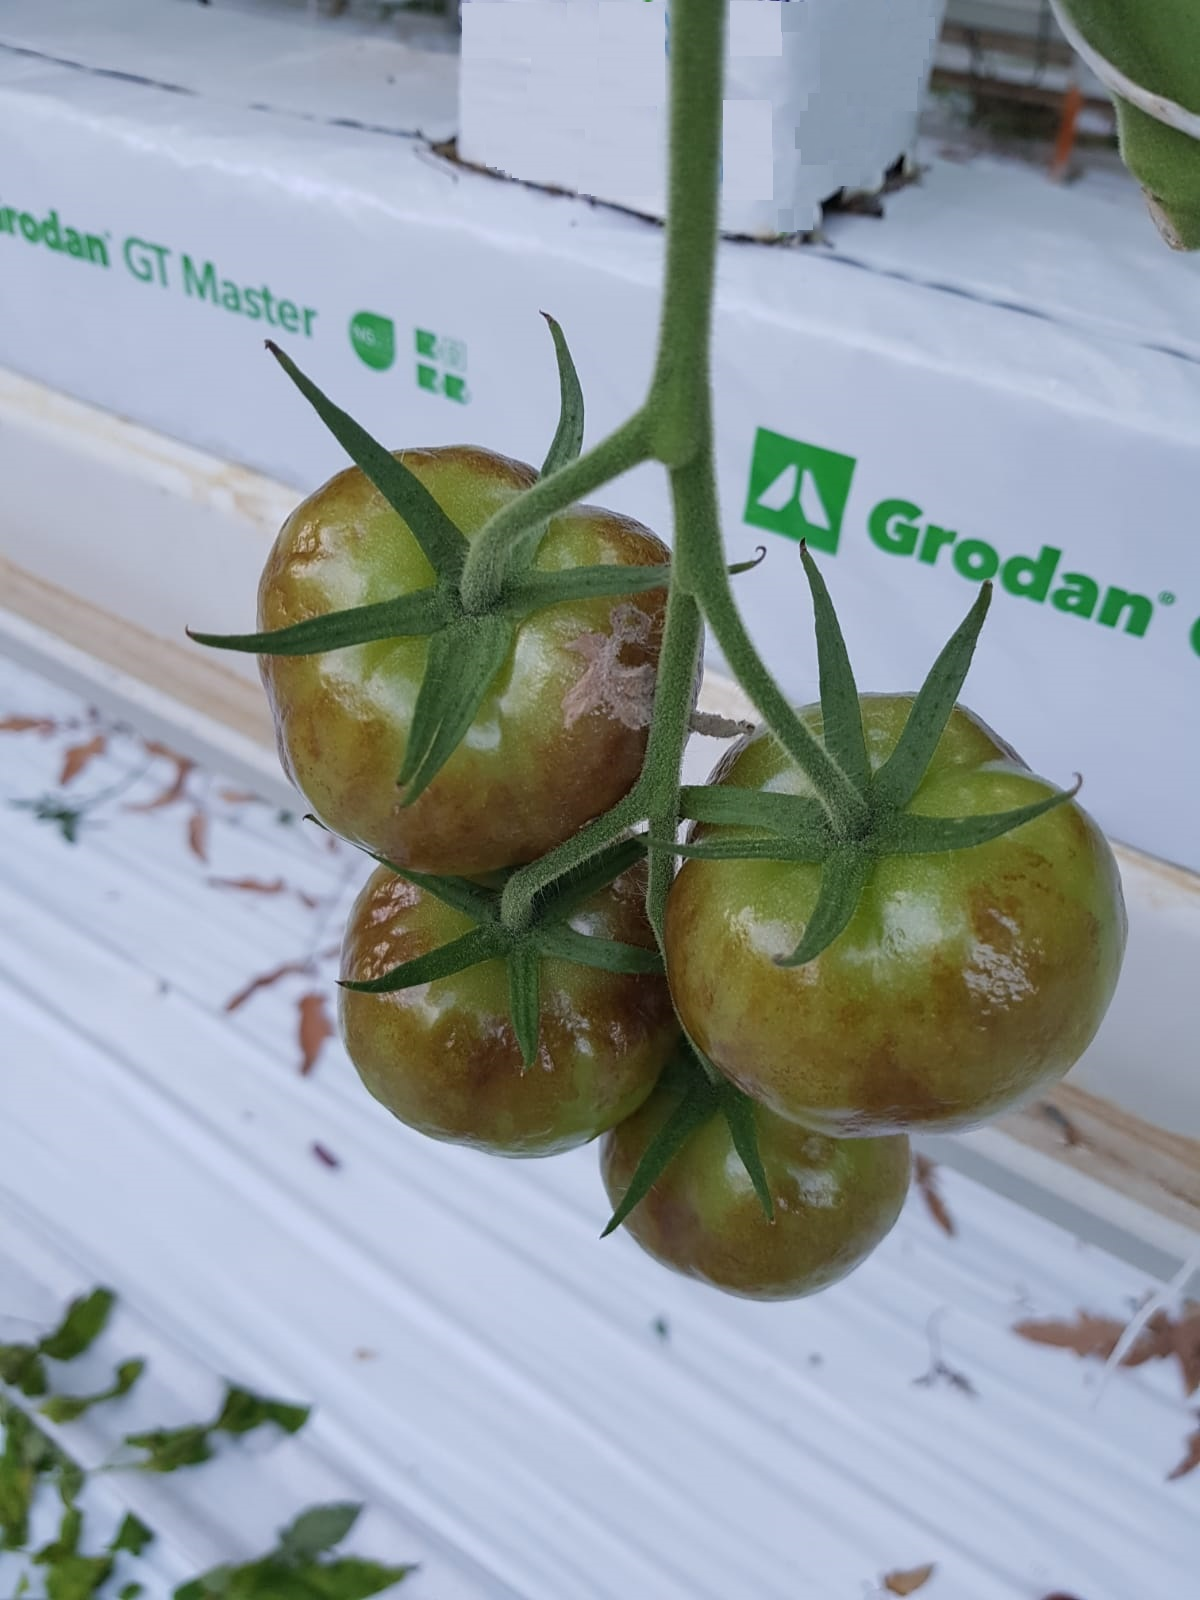 Tissue becoming necrotic. More severe symptoms of rugose patches on green fruit